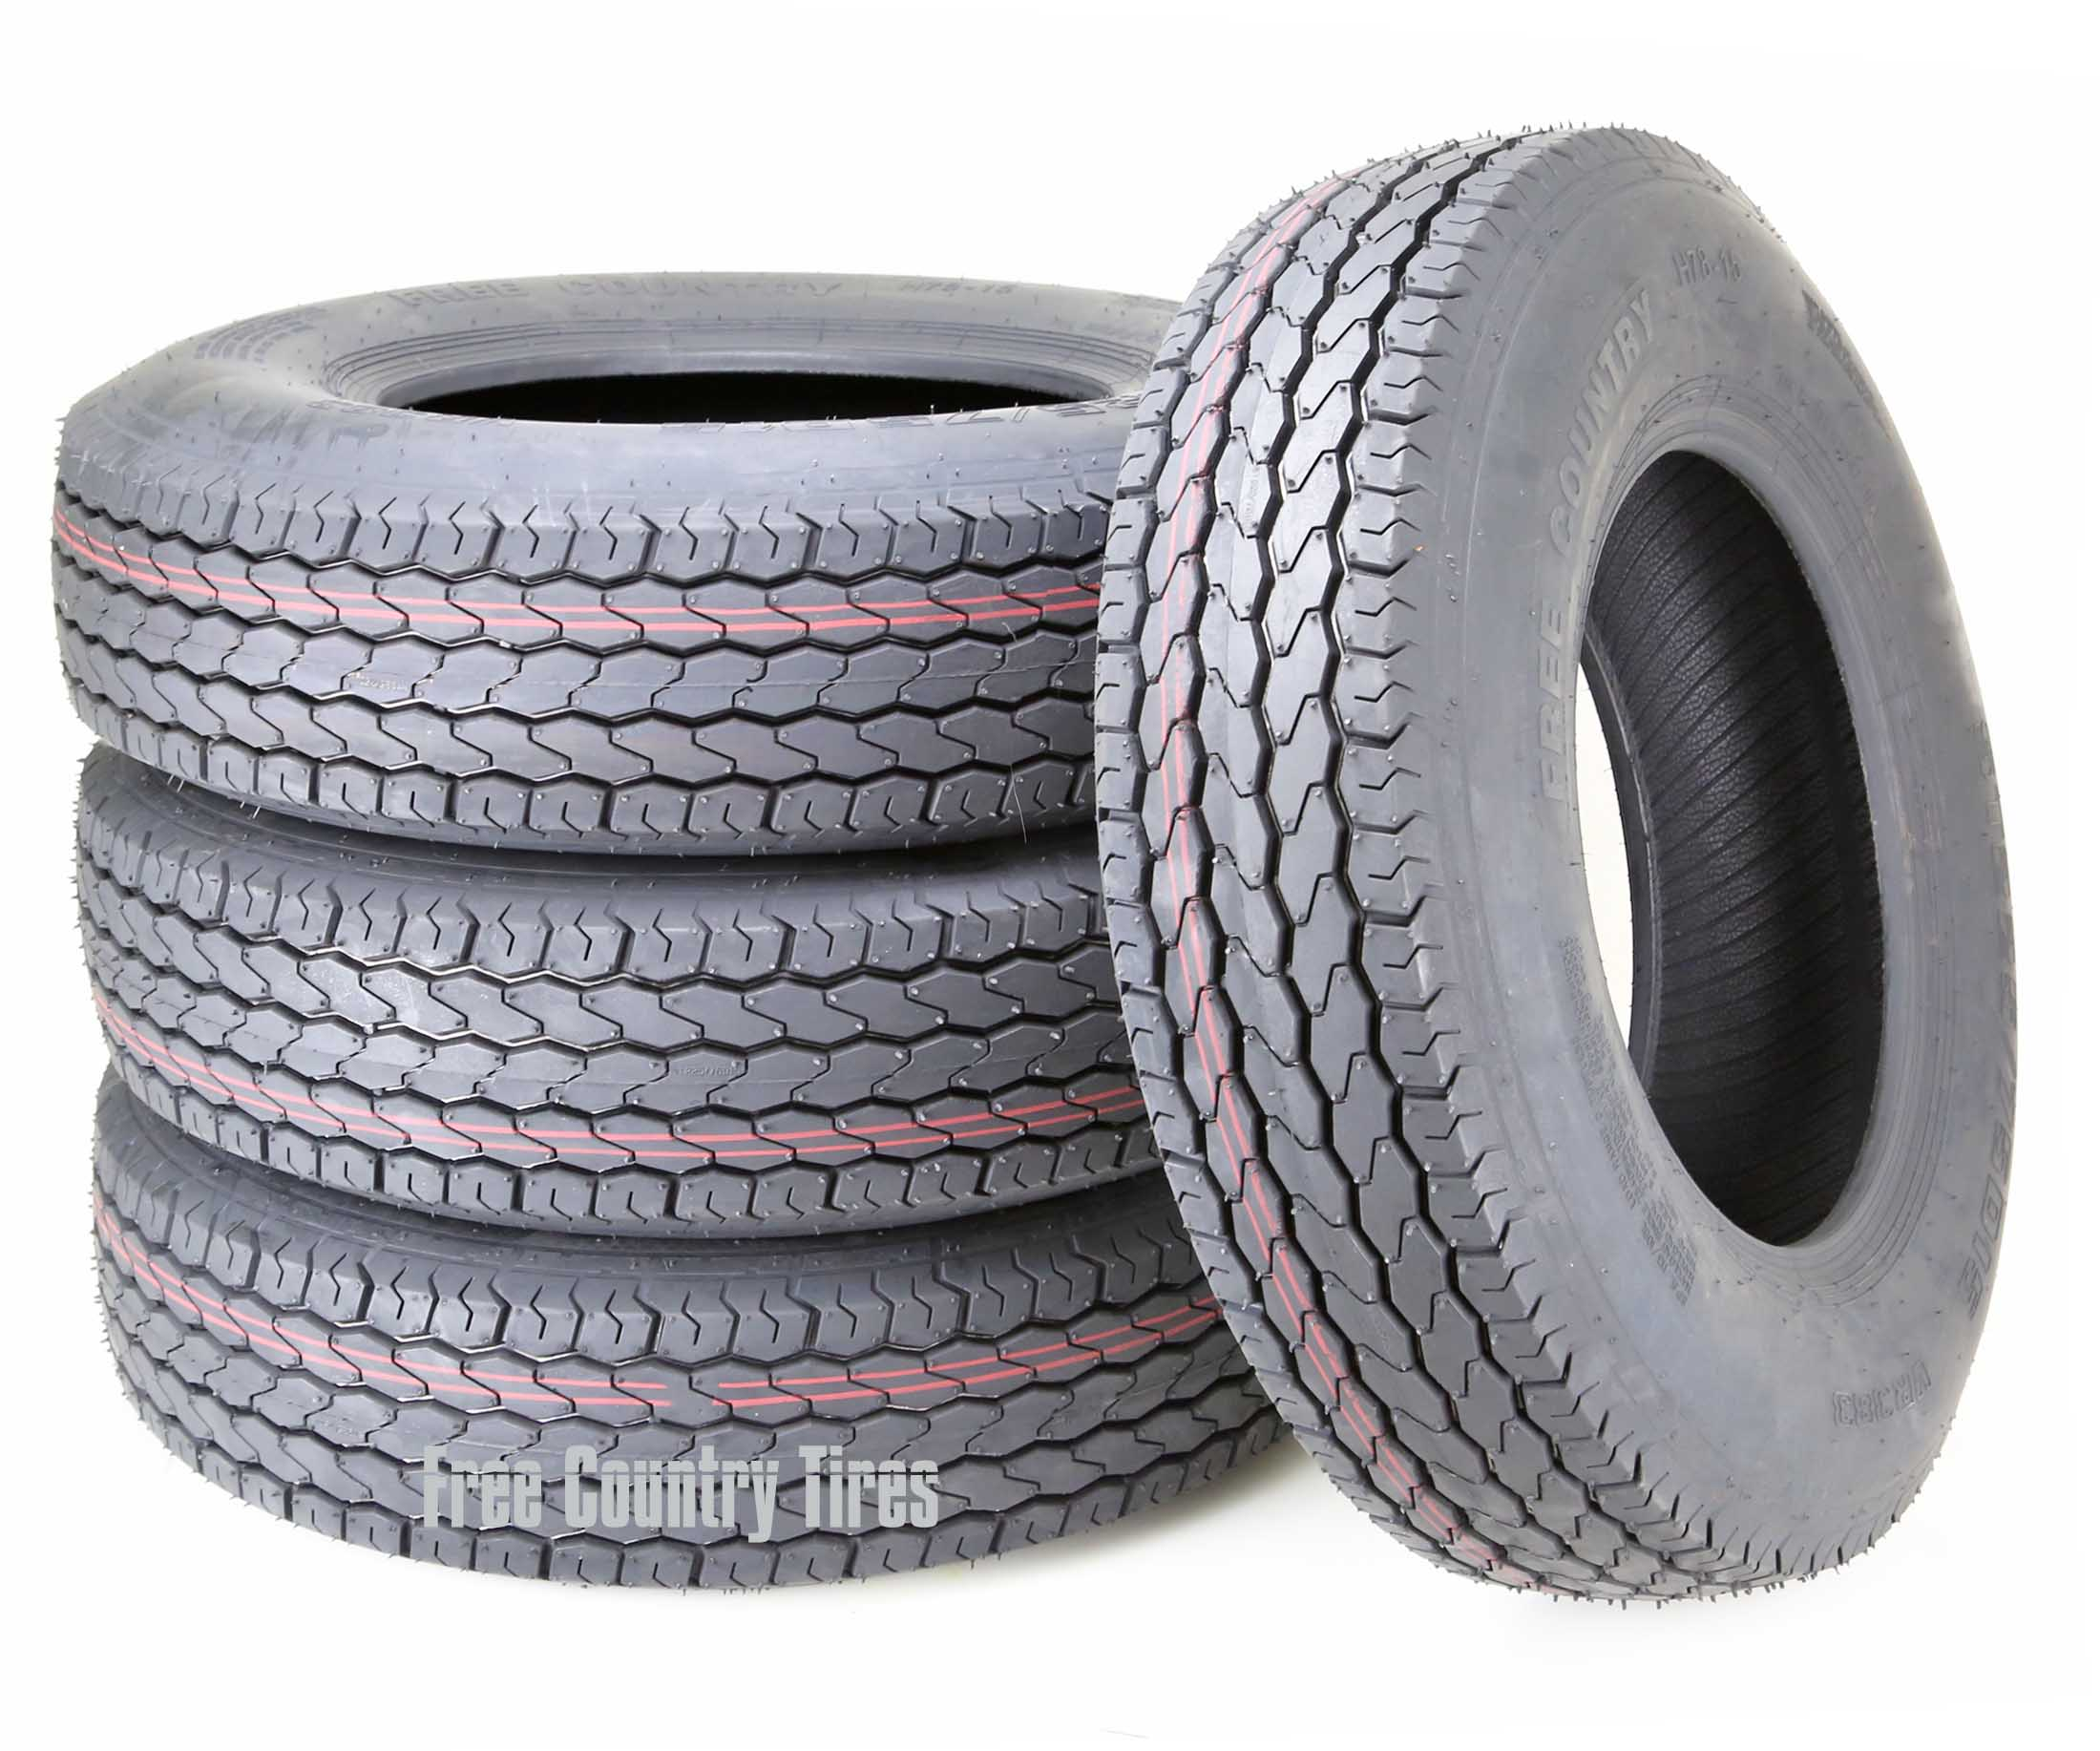 New Tires For My Car, 4 Free Country Trailer Tires Stpr Bias Lr D, New Tires For My Car